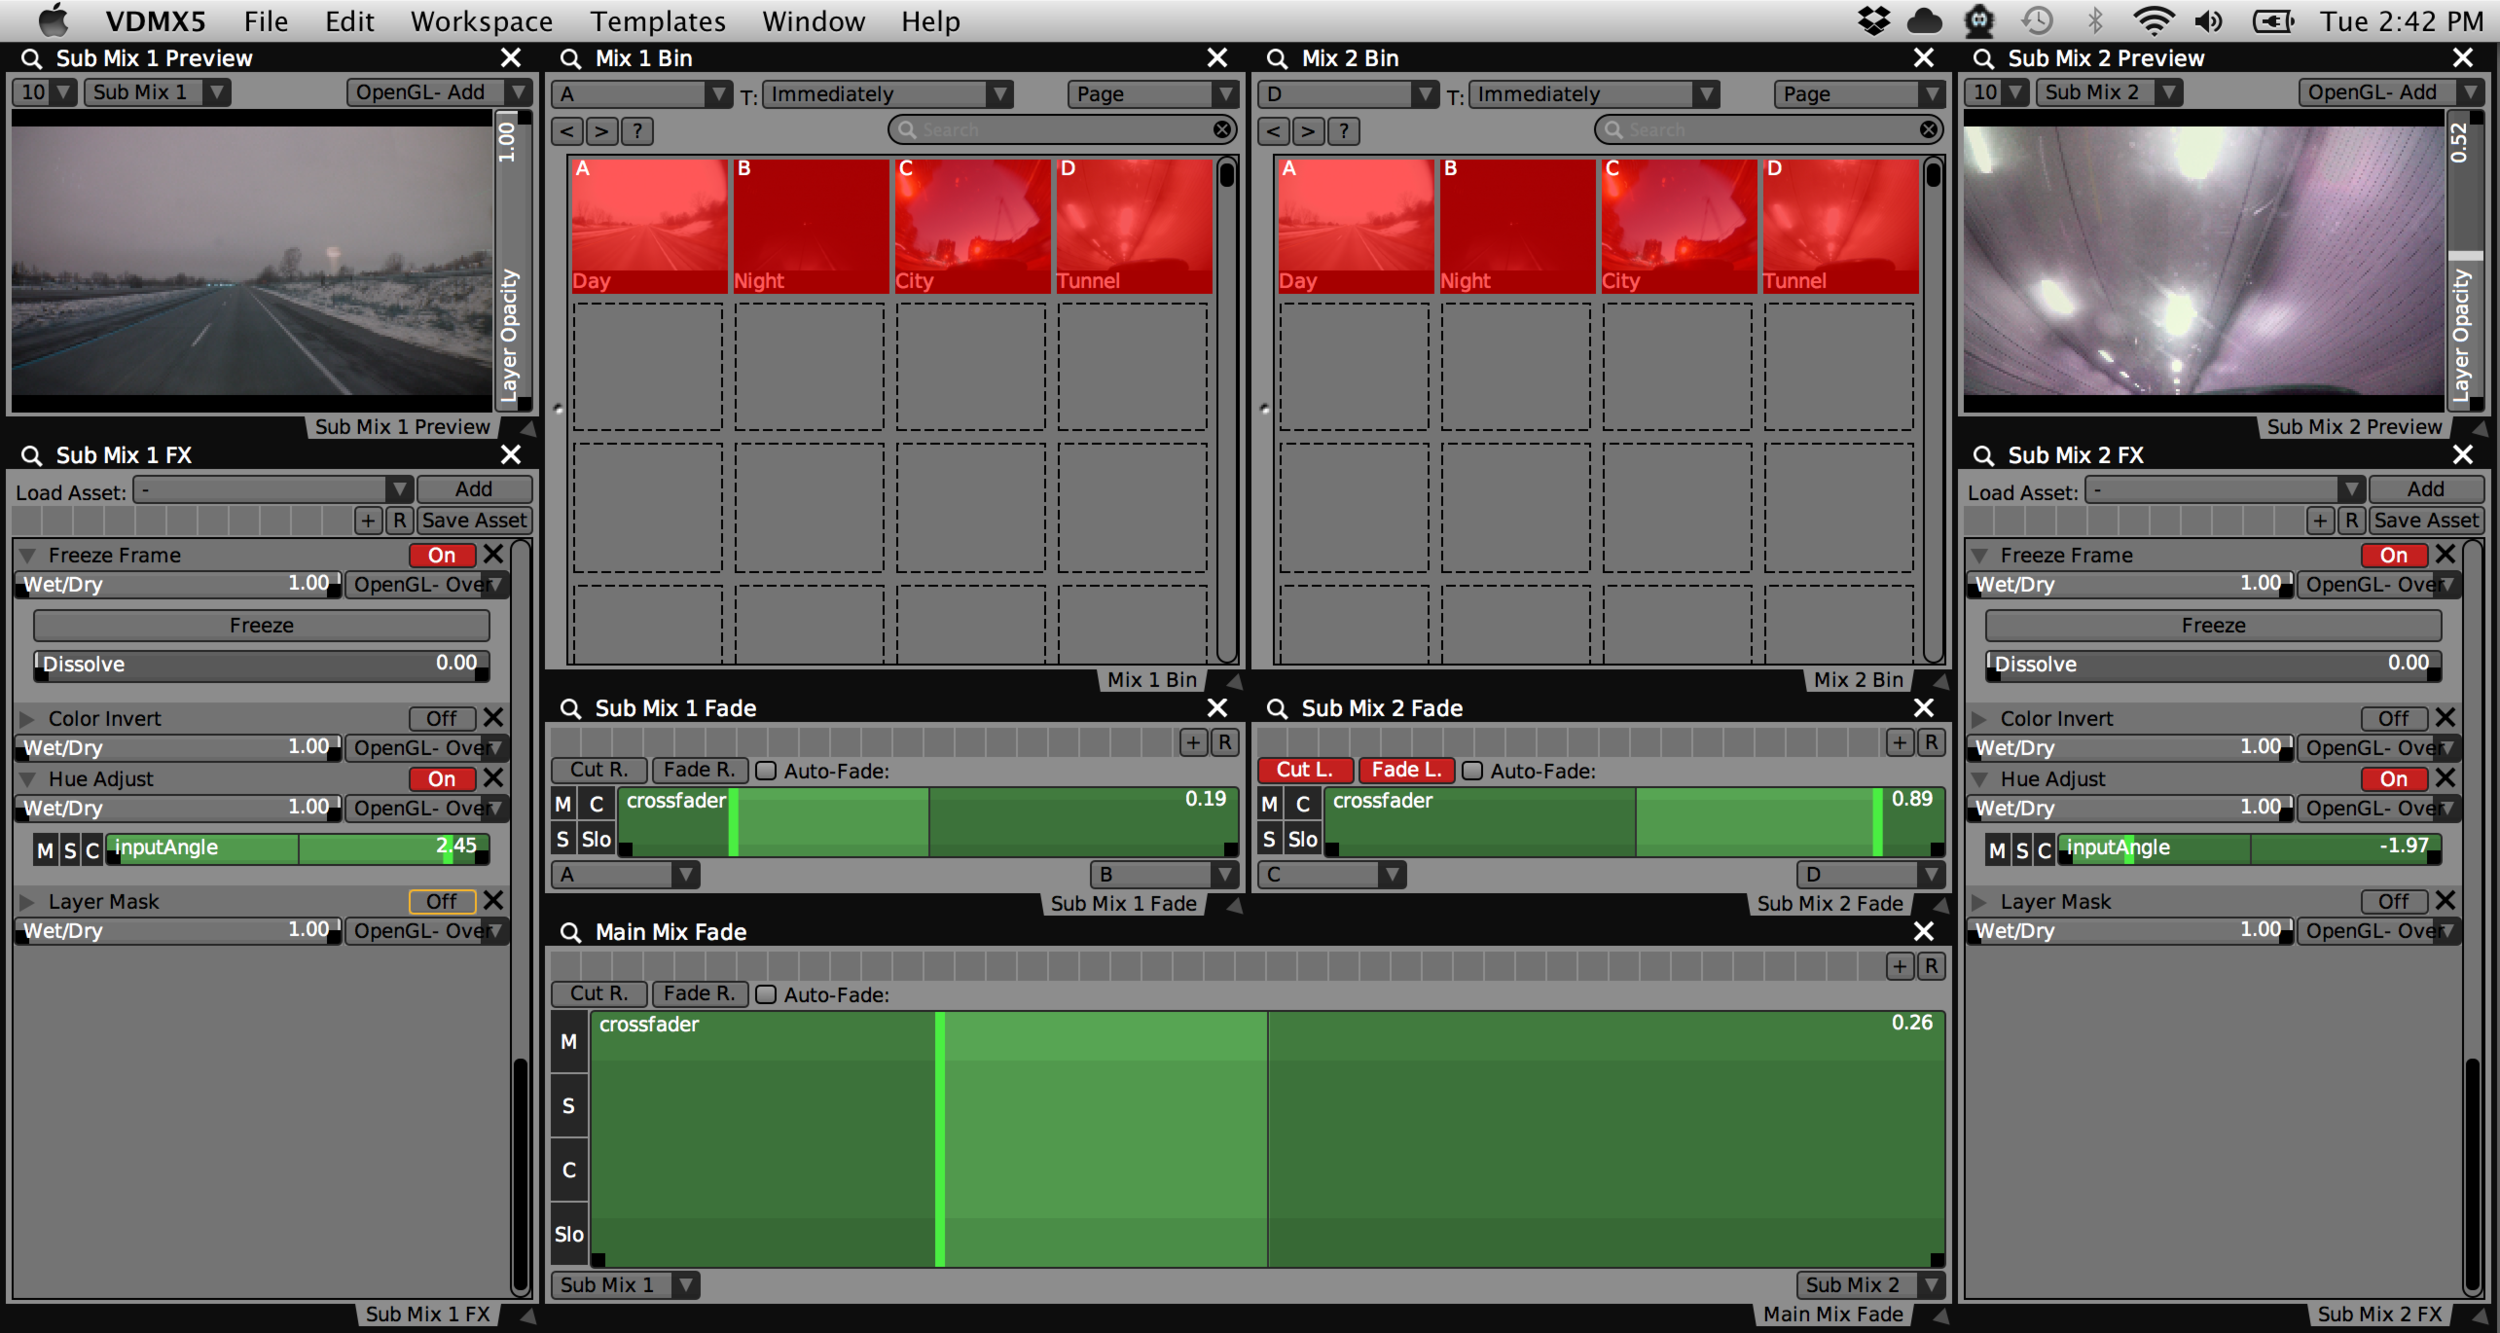 Our completed dual two channel mixer template for VDMX.